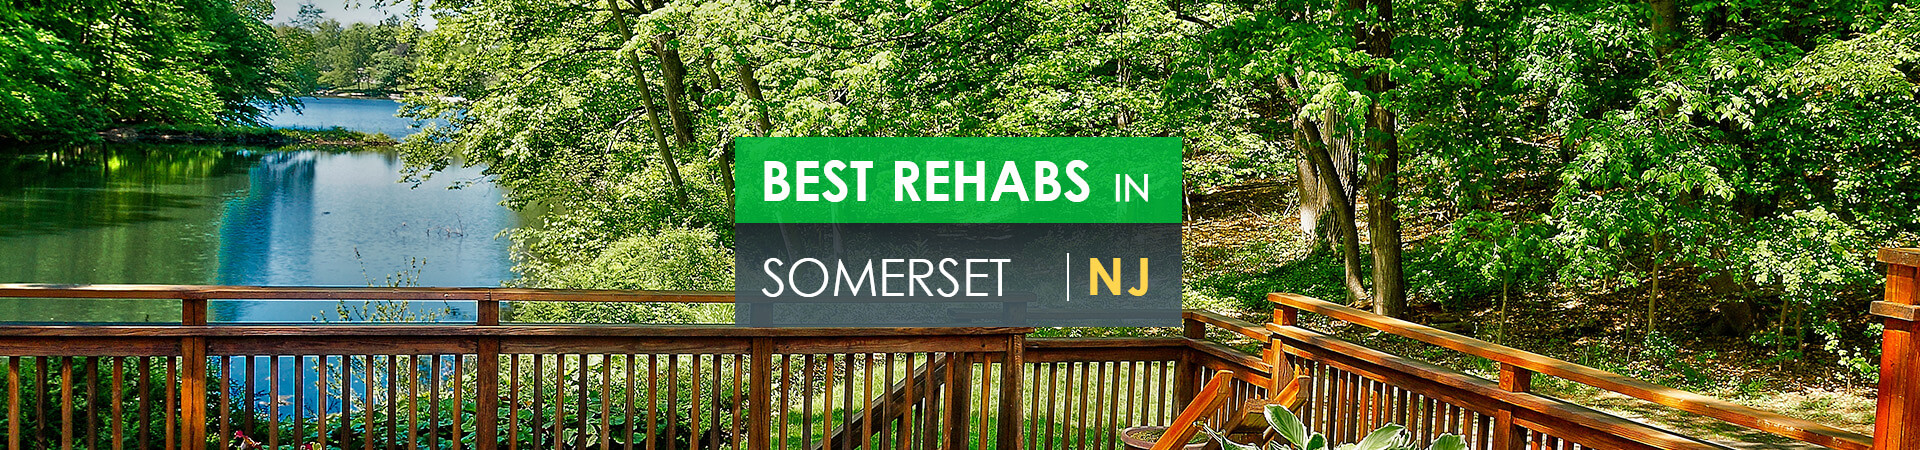 Best rehabs in Somerset, NJ